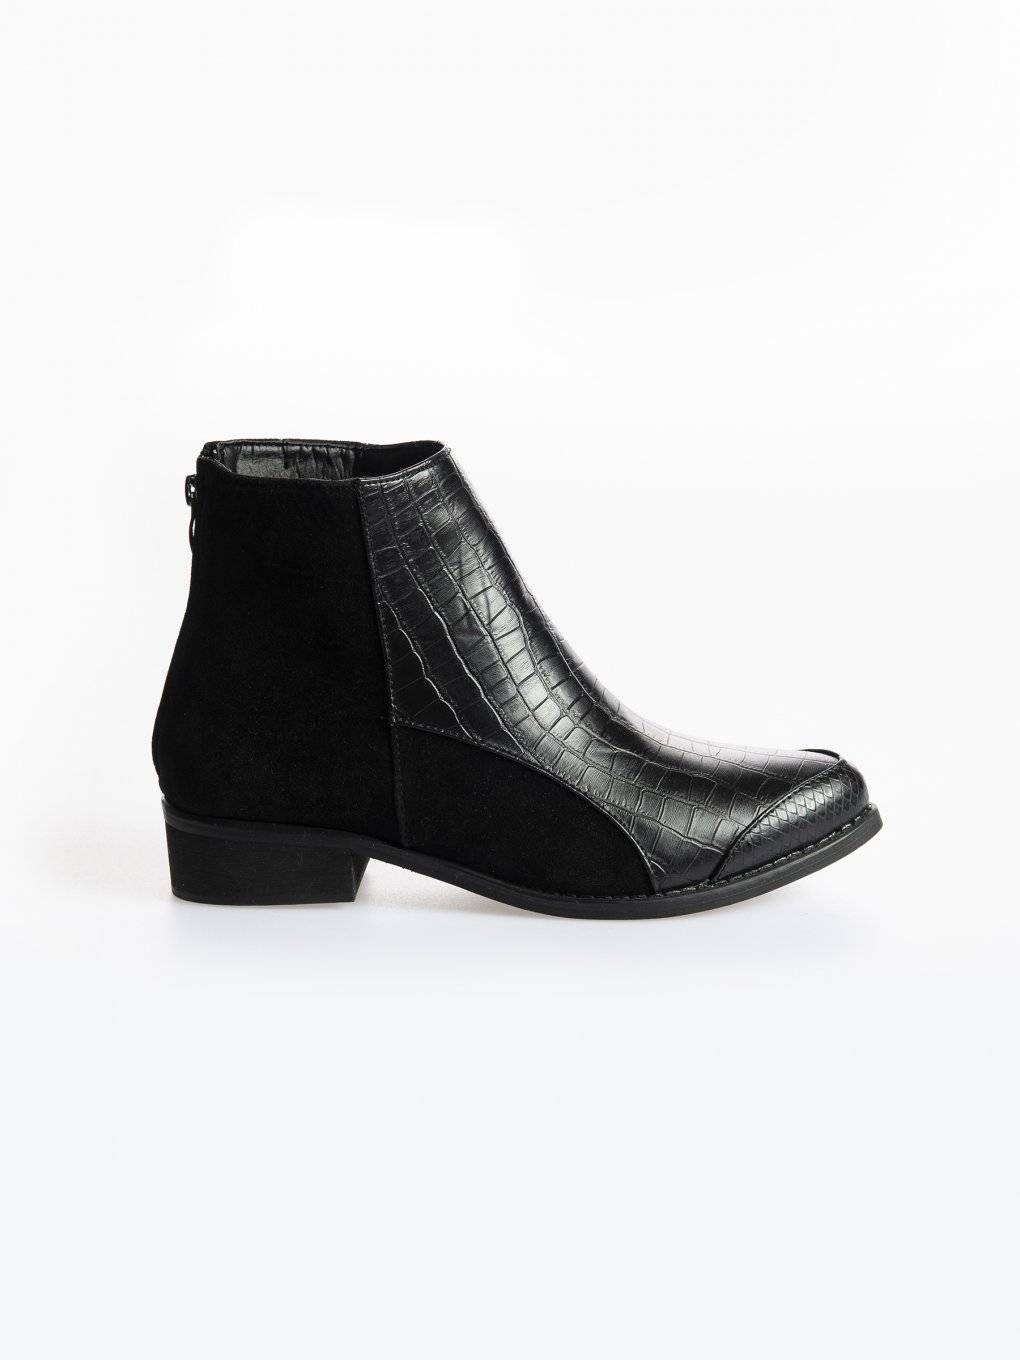 Faux leather ankle boots with crocodile and snake skin detail